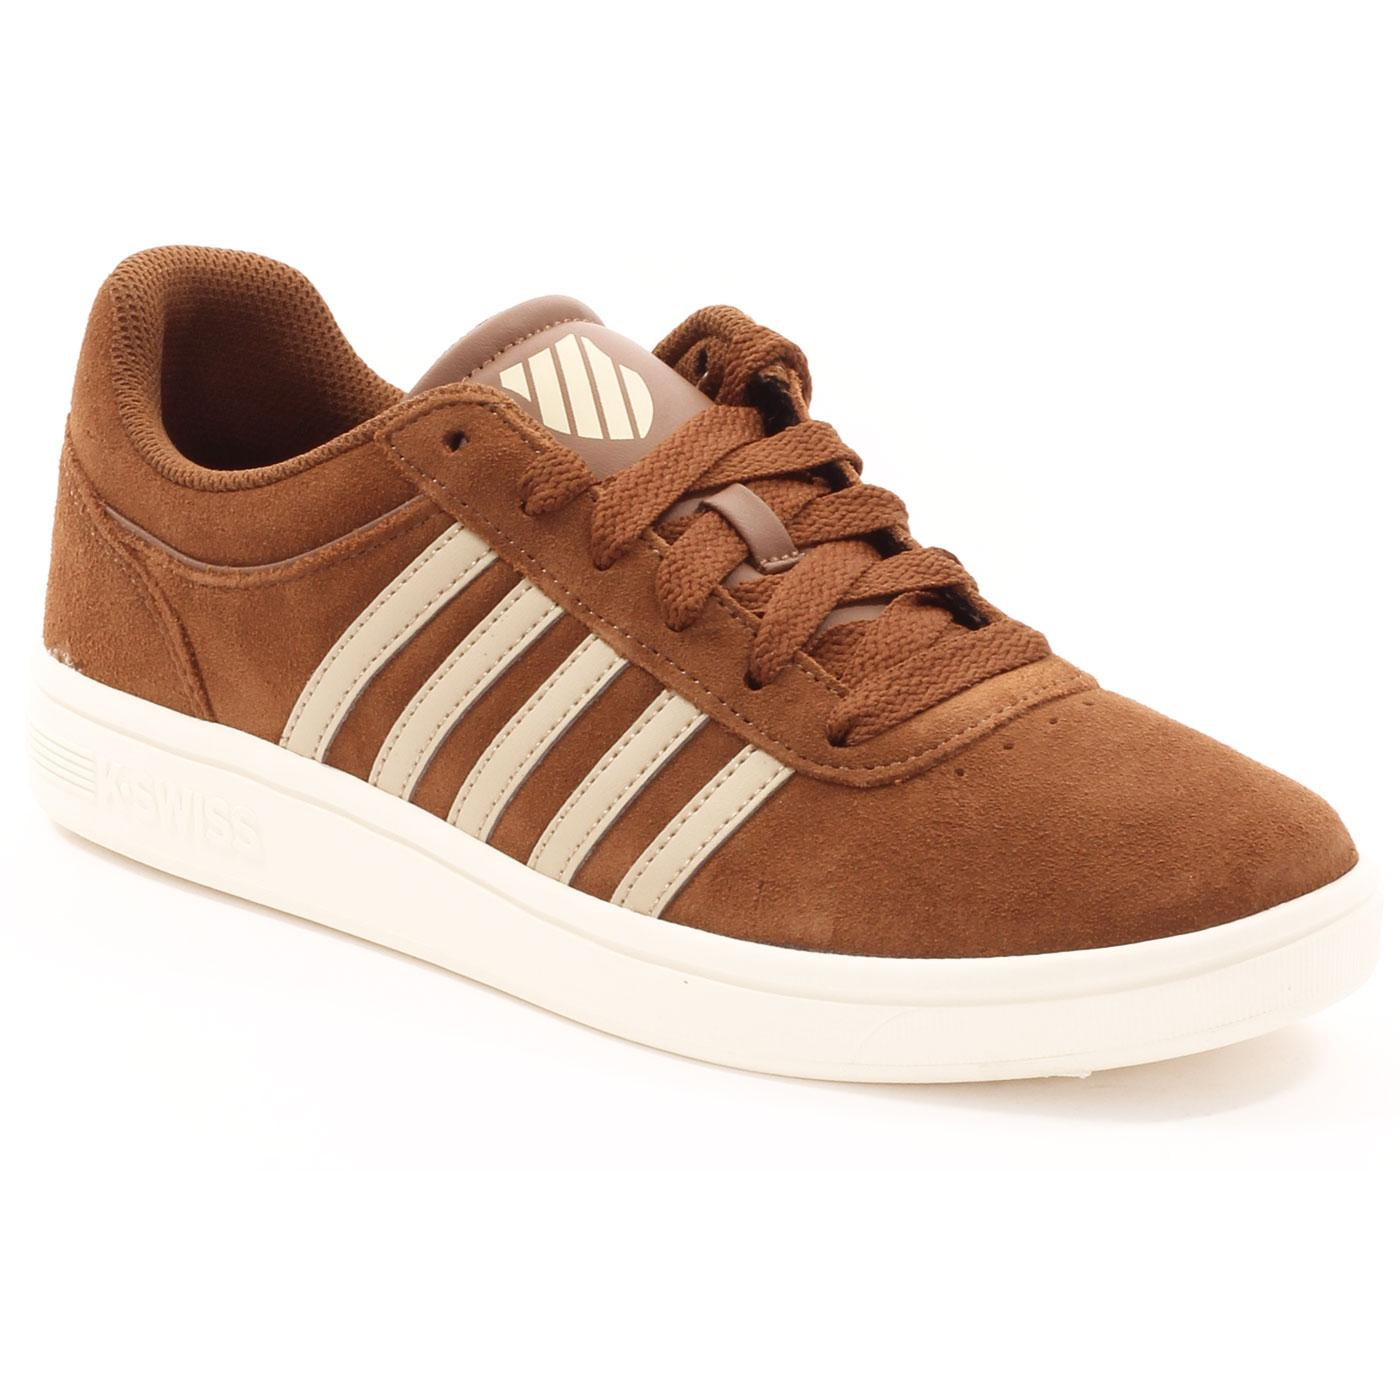 Court Cheswick Suede K-SWISS Retro Trainers BB/AW